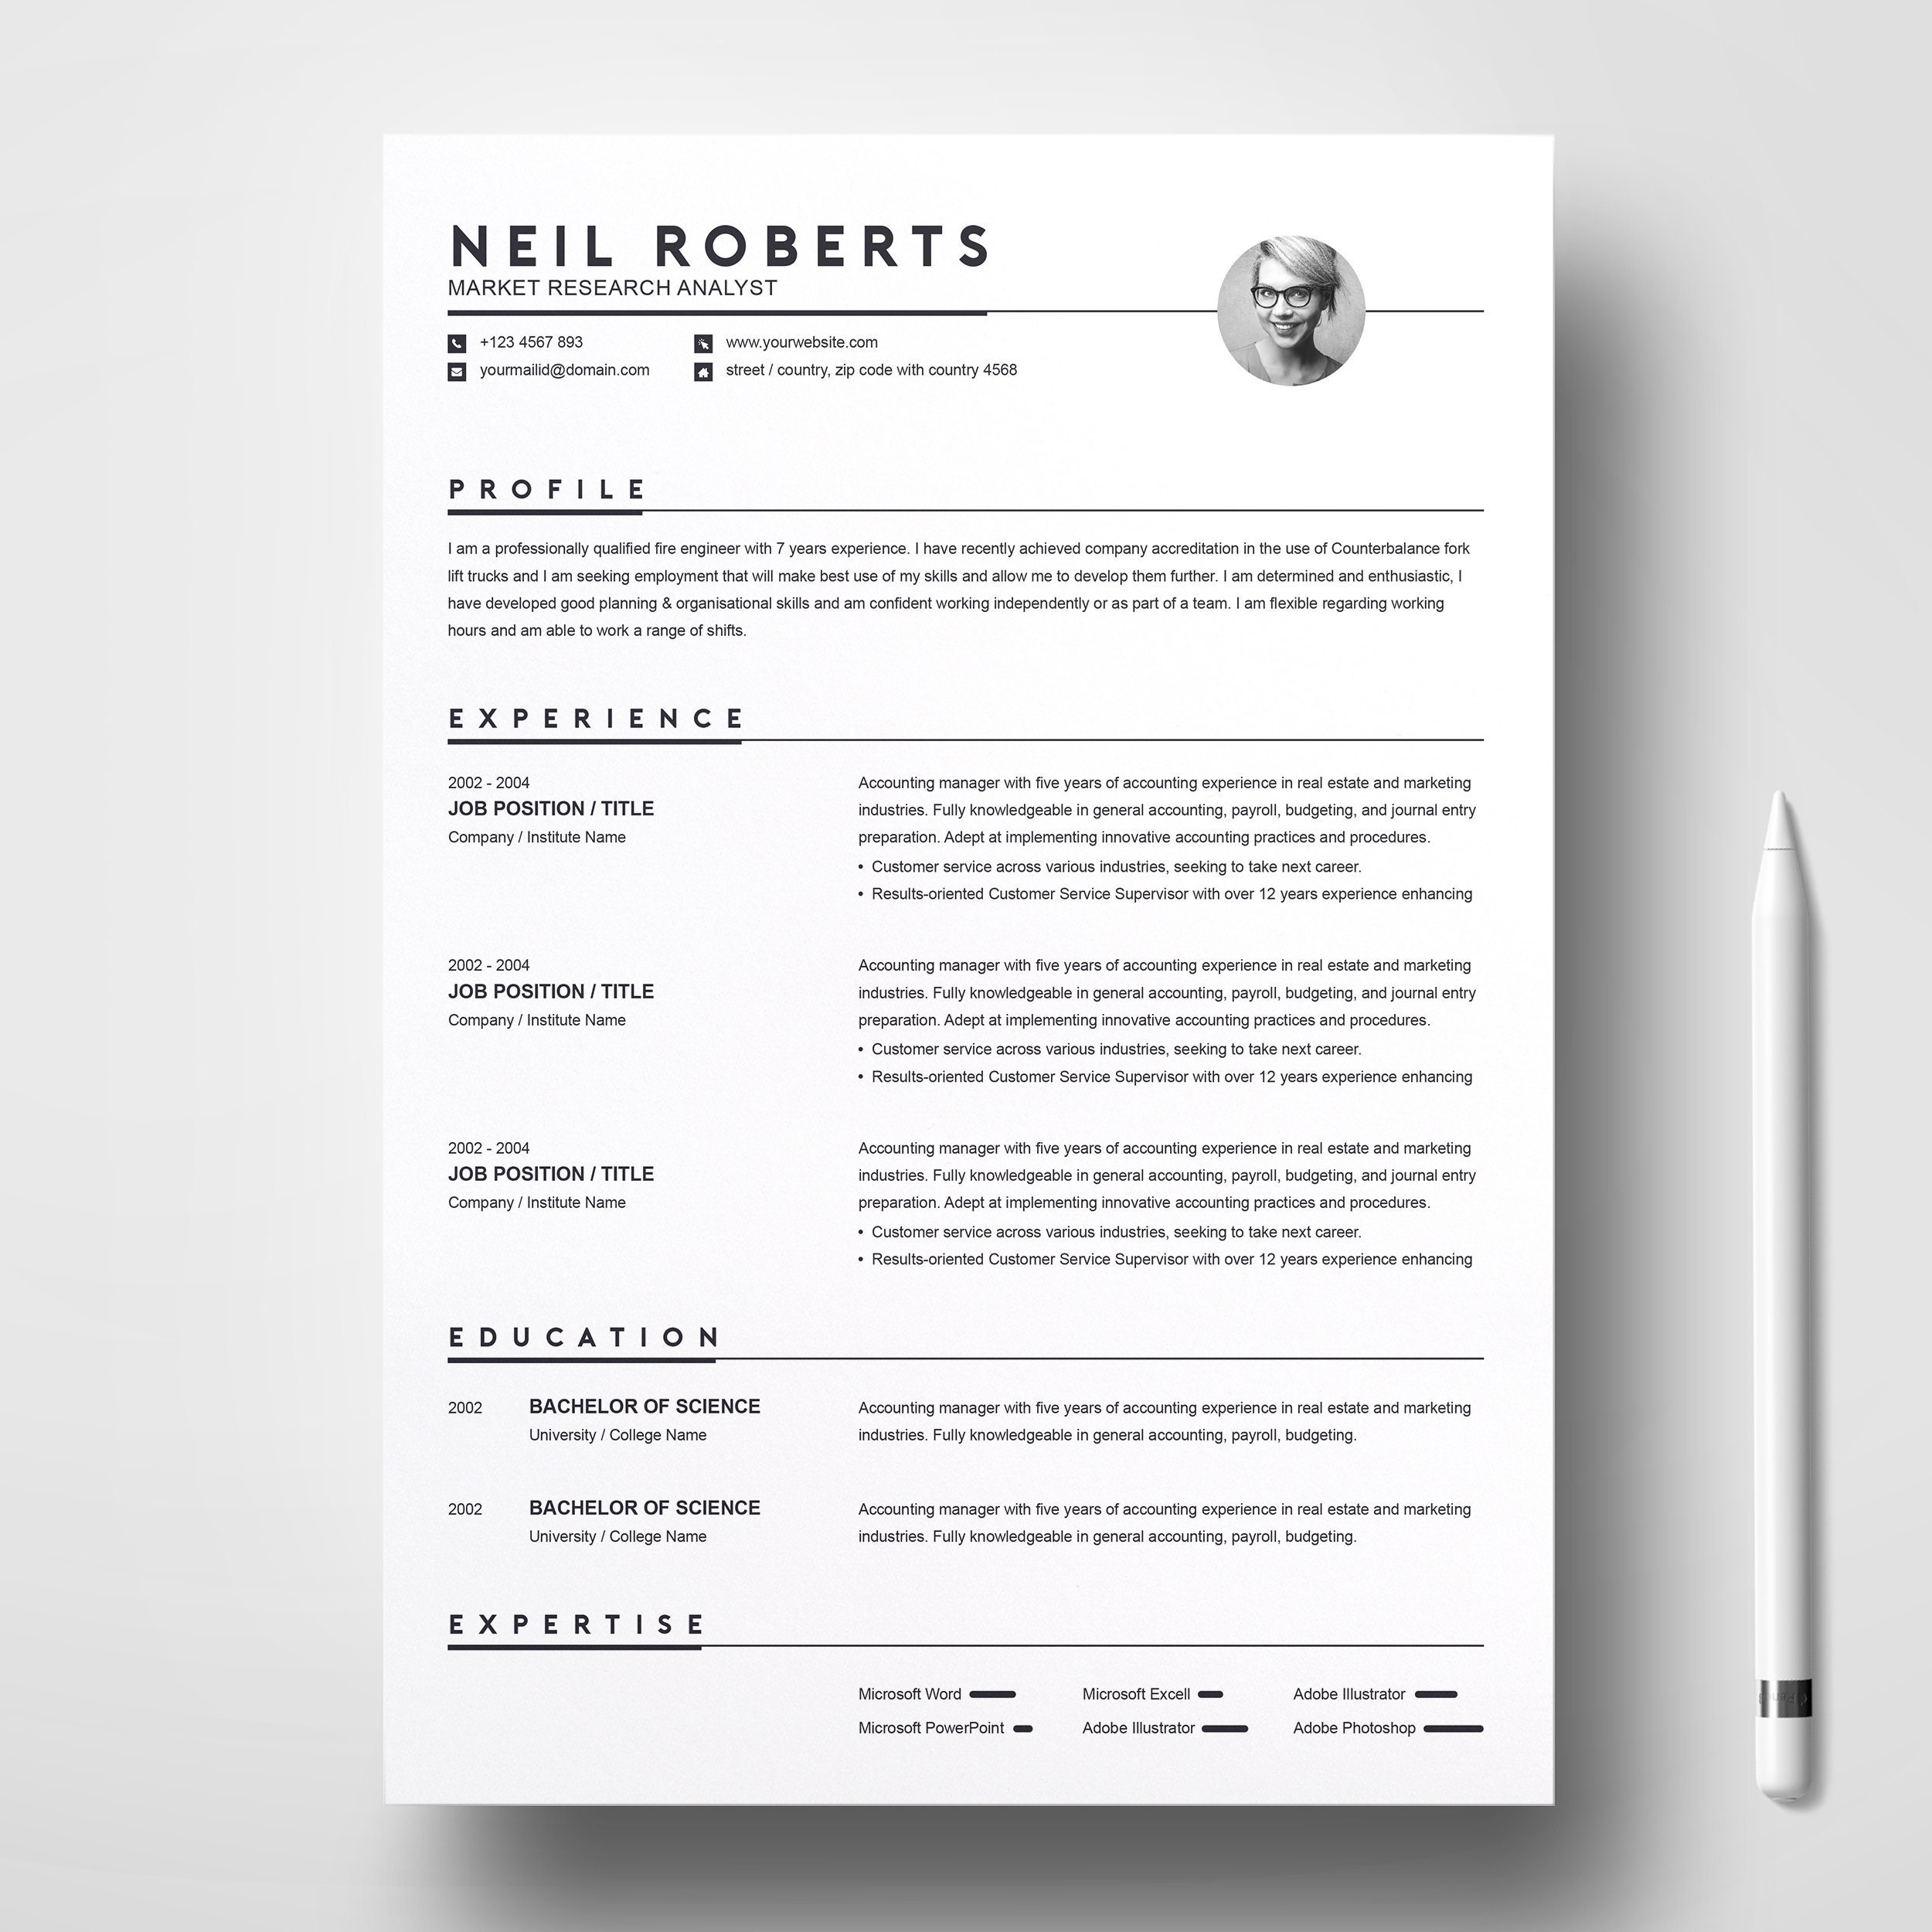 Clean Resume Design Template | Word Resume / CV & Cover Letter | Simple  Curriculum Vitae with Cover Letter | Apple Pages | PSD | EPS